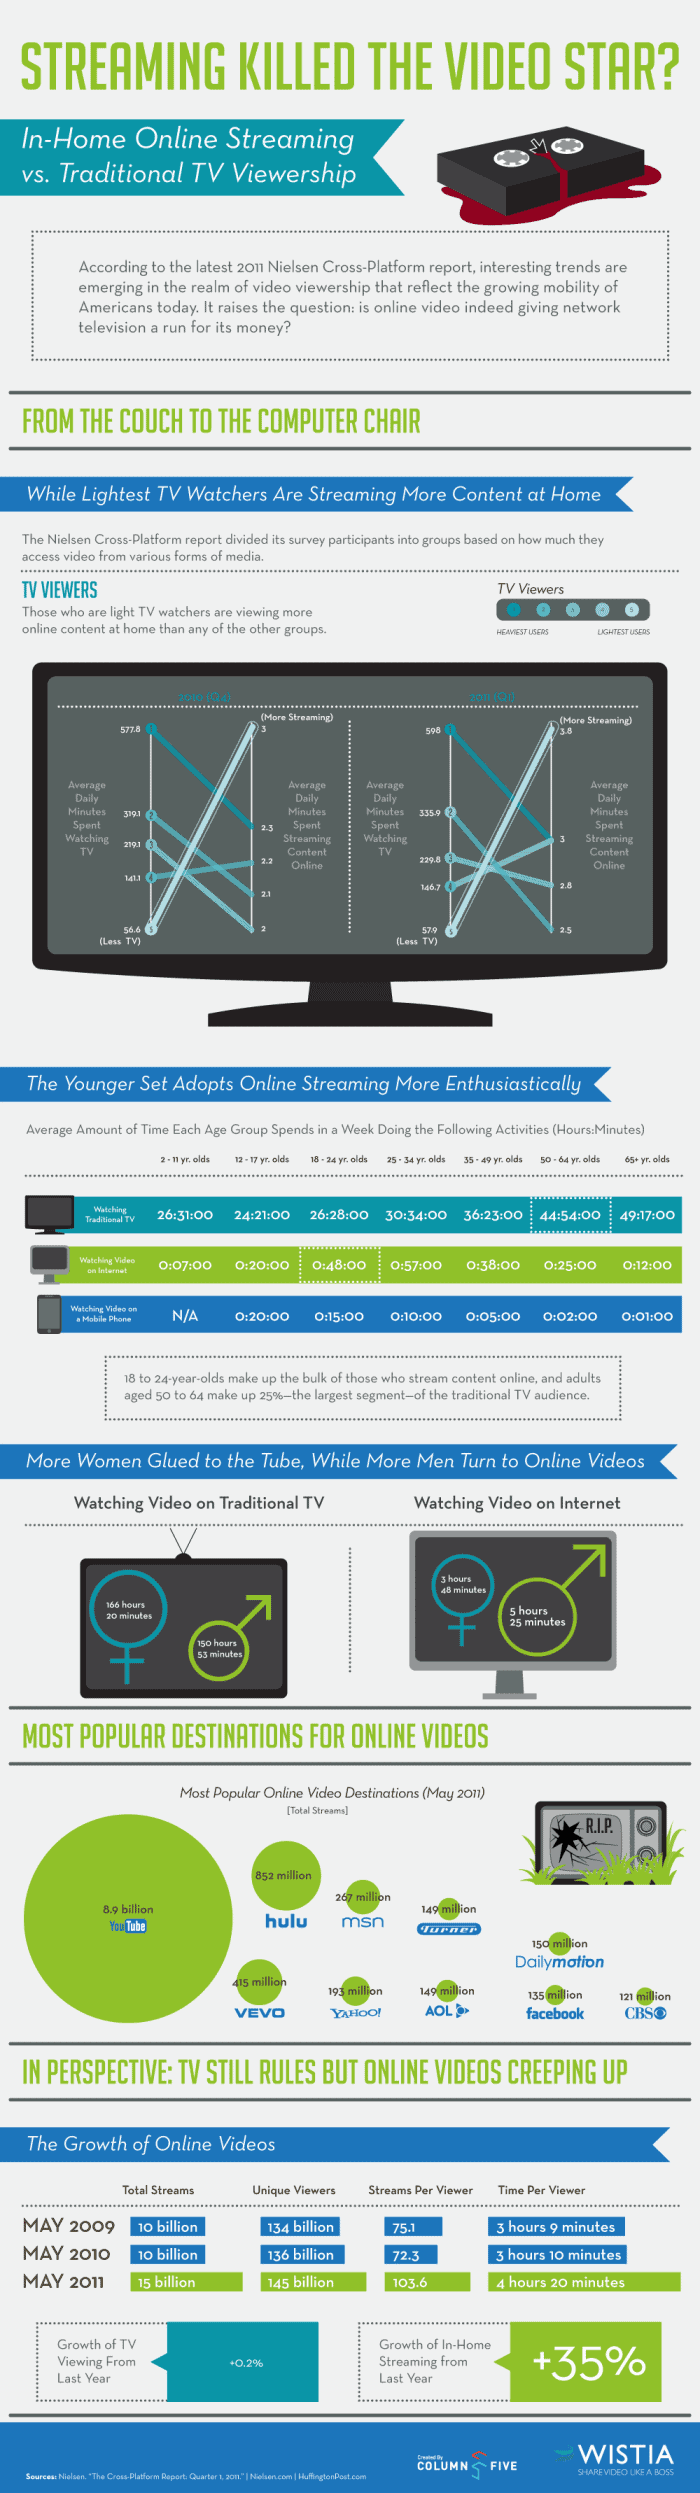 Streaming killed the video star Infographic